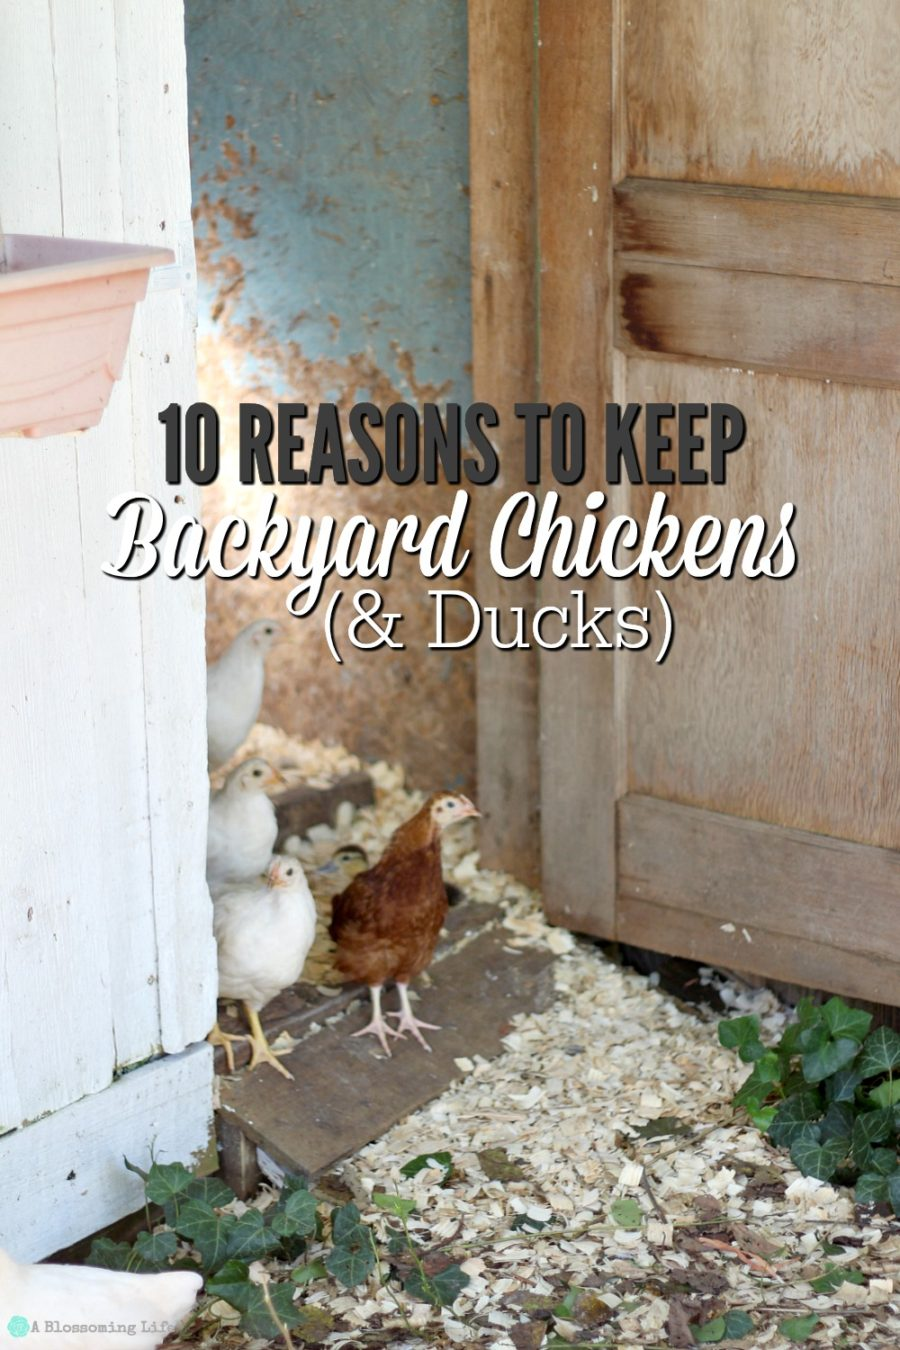 10 Reasons To Keep Backyard Chickens & Ducks